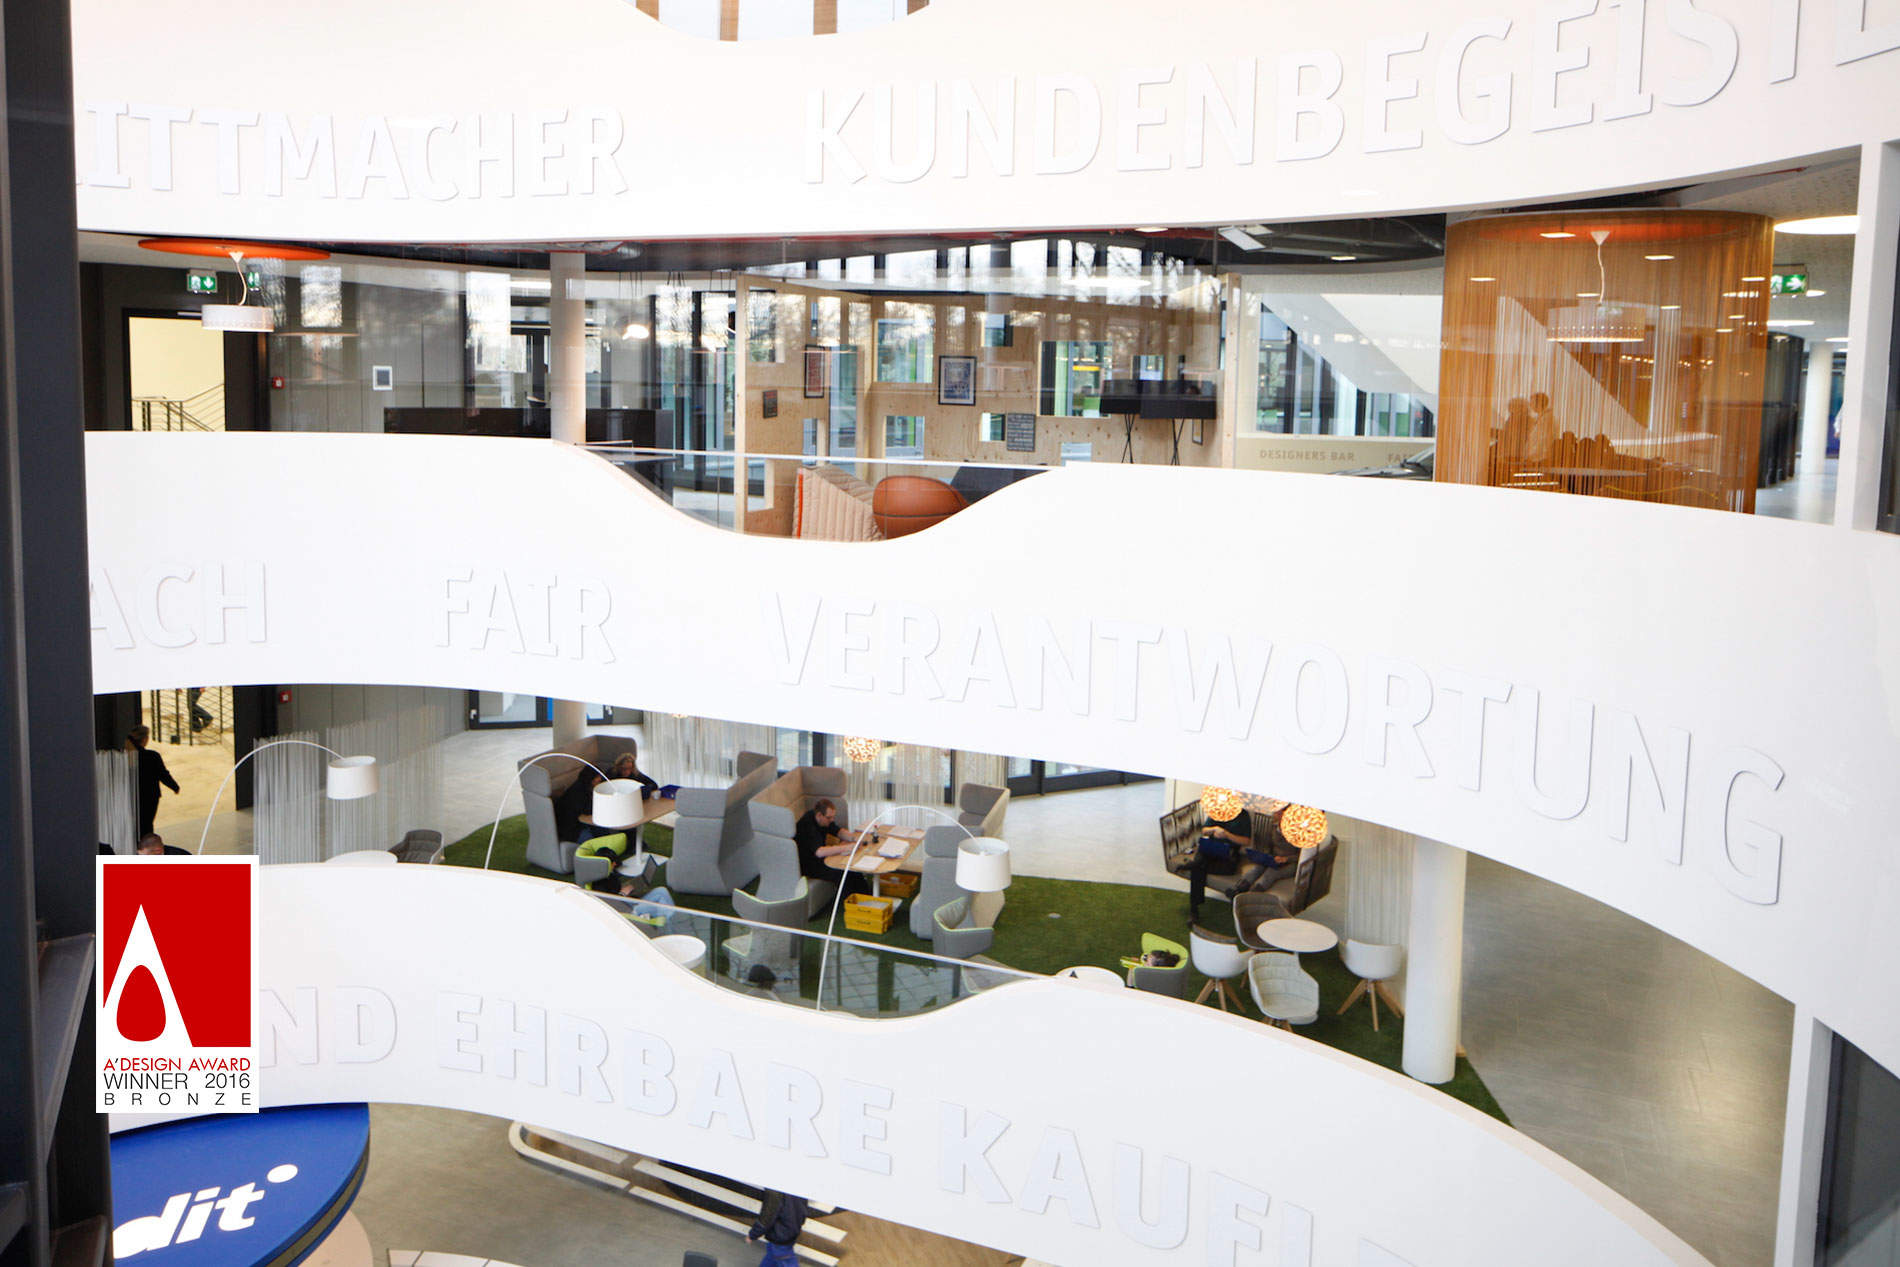 easyCredit,Nürnberg / Office / Architecture - Technology - Design ...